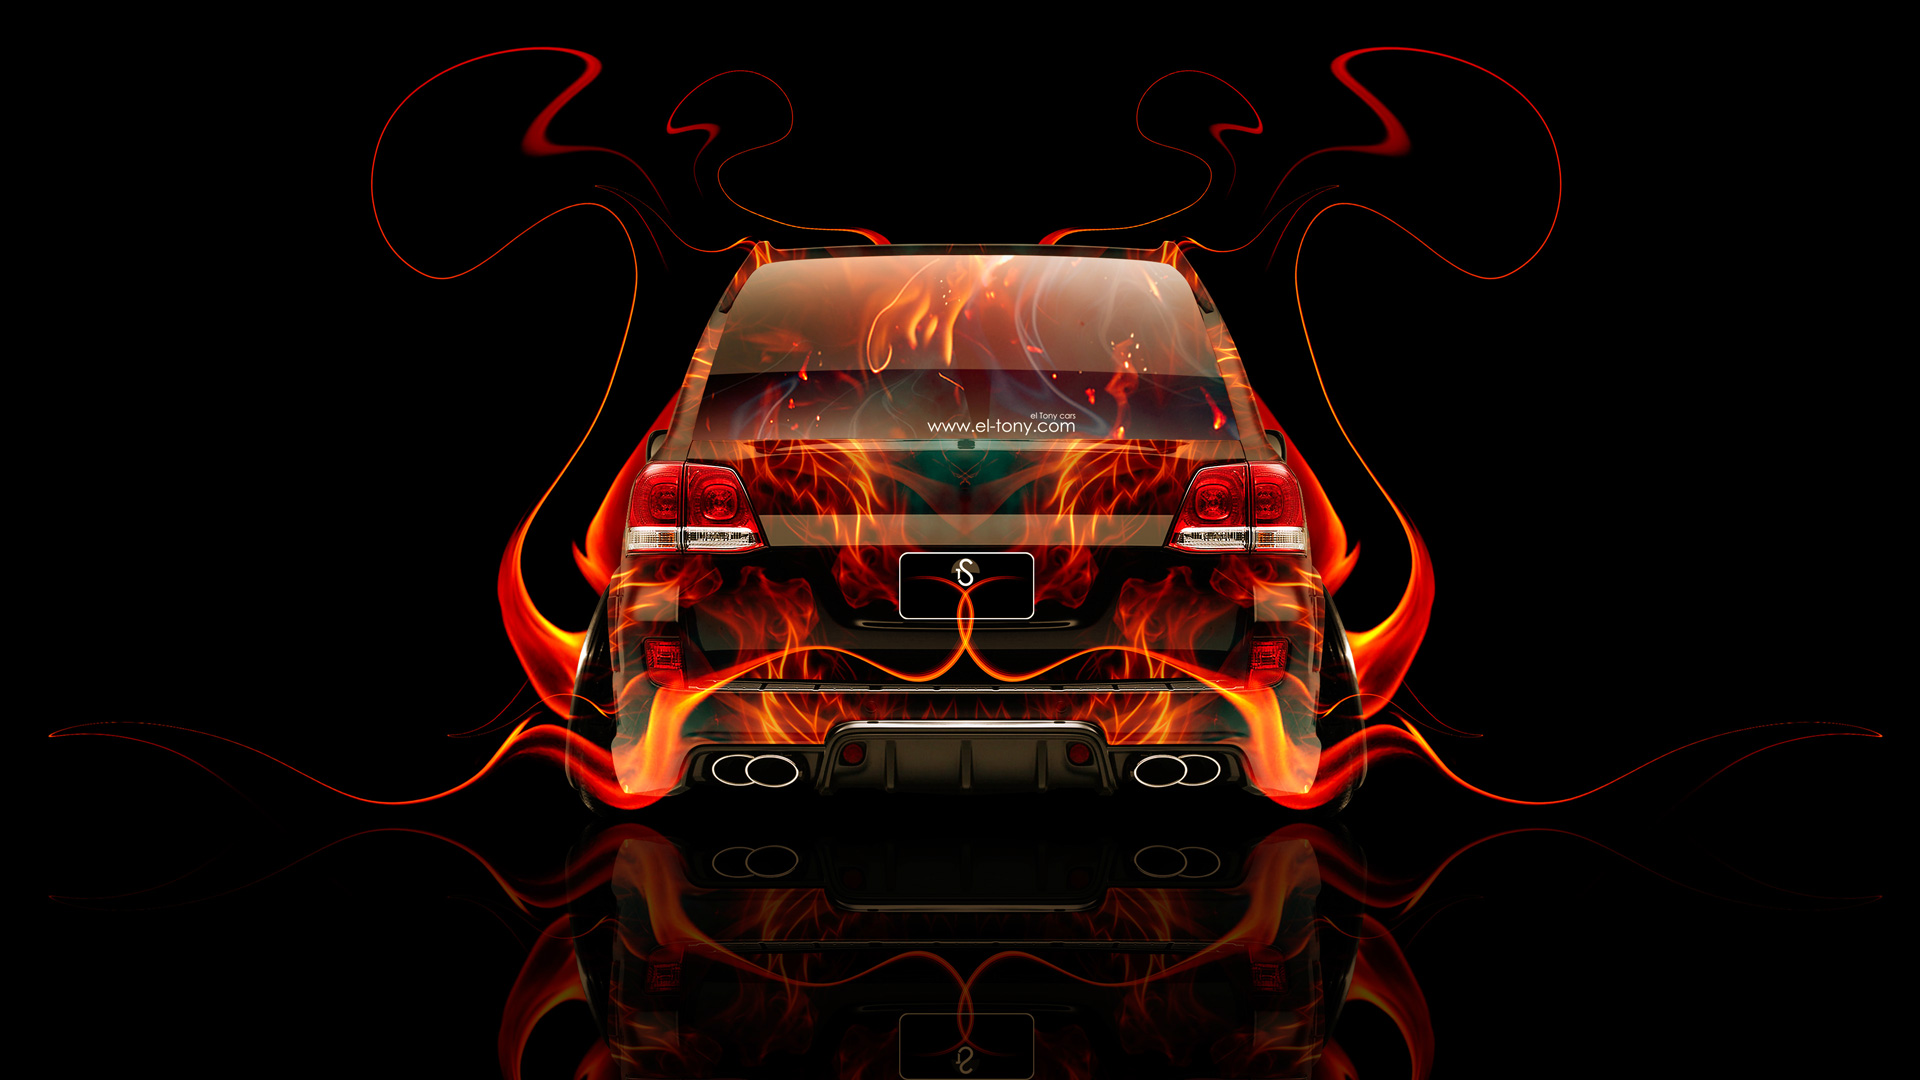 Toyota Land Cruiser 200 JDM Back Fire Abstract